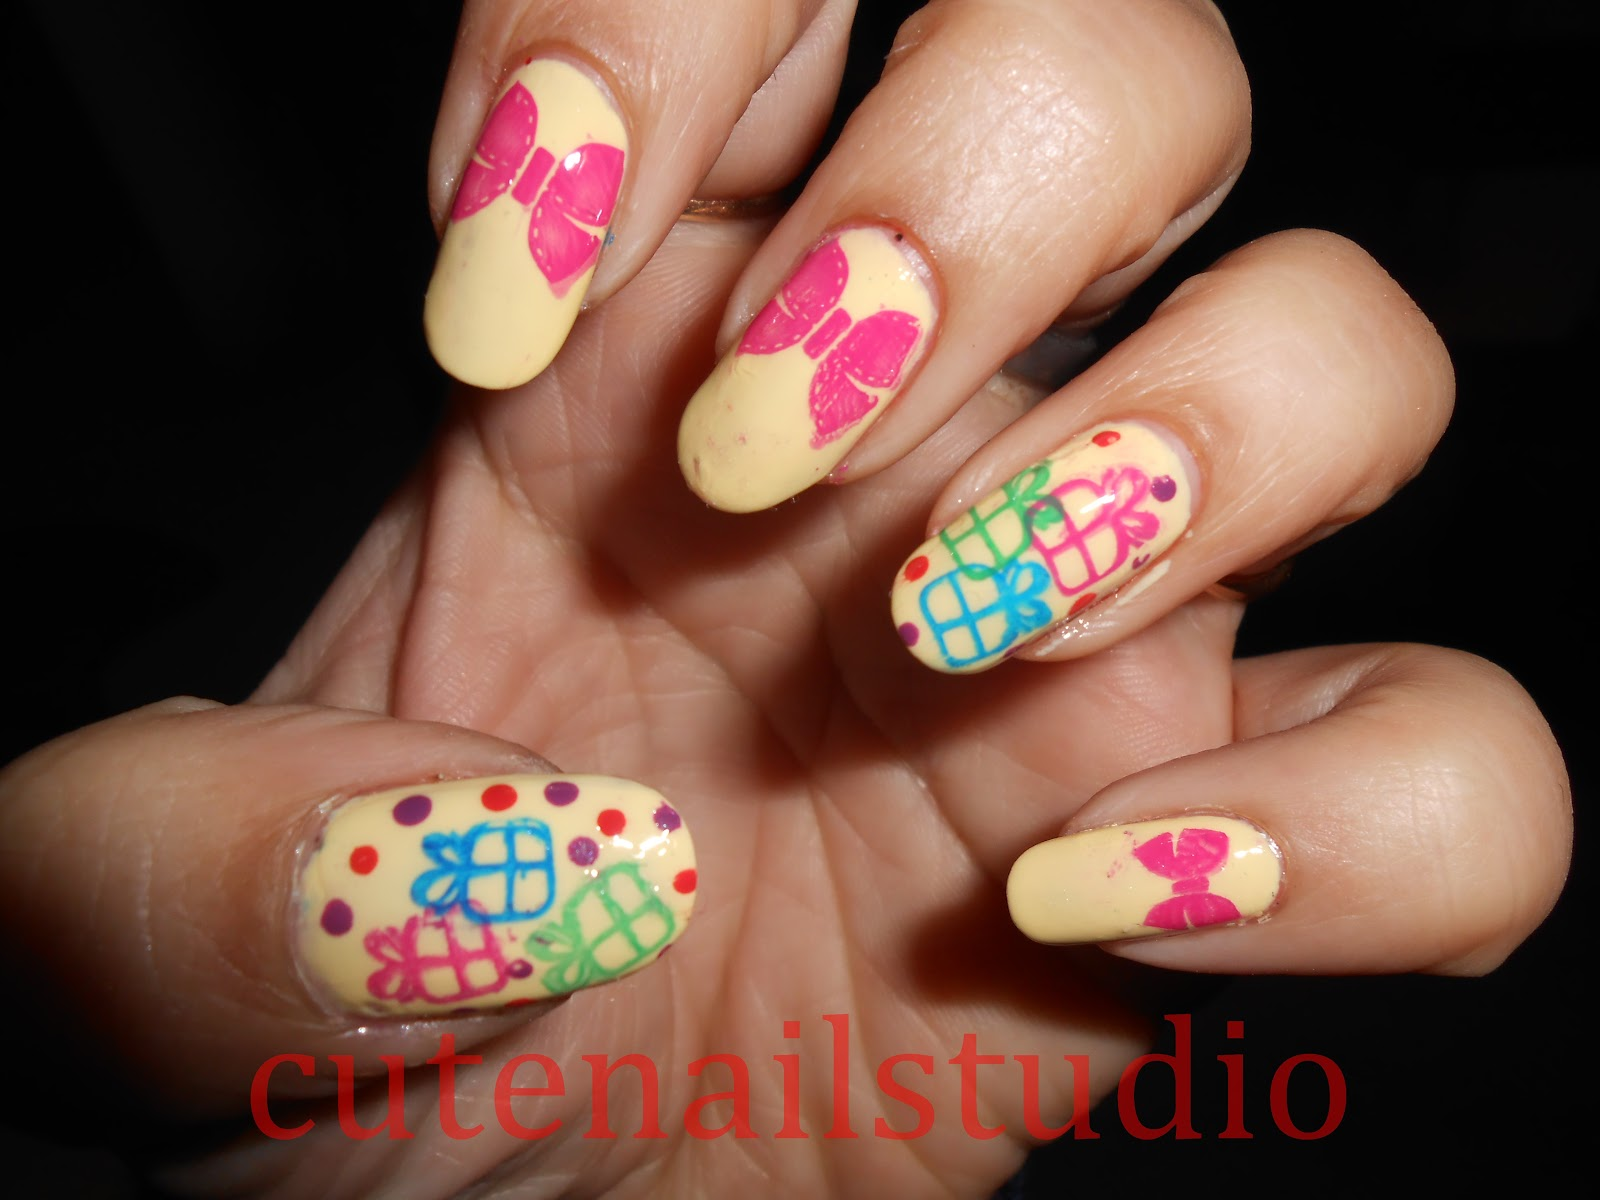 Cute nails: Christmas nail art challenge day 4 : Gifts and Presents.